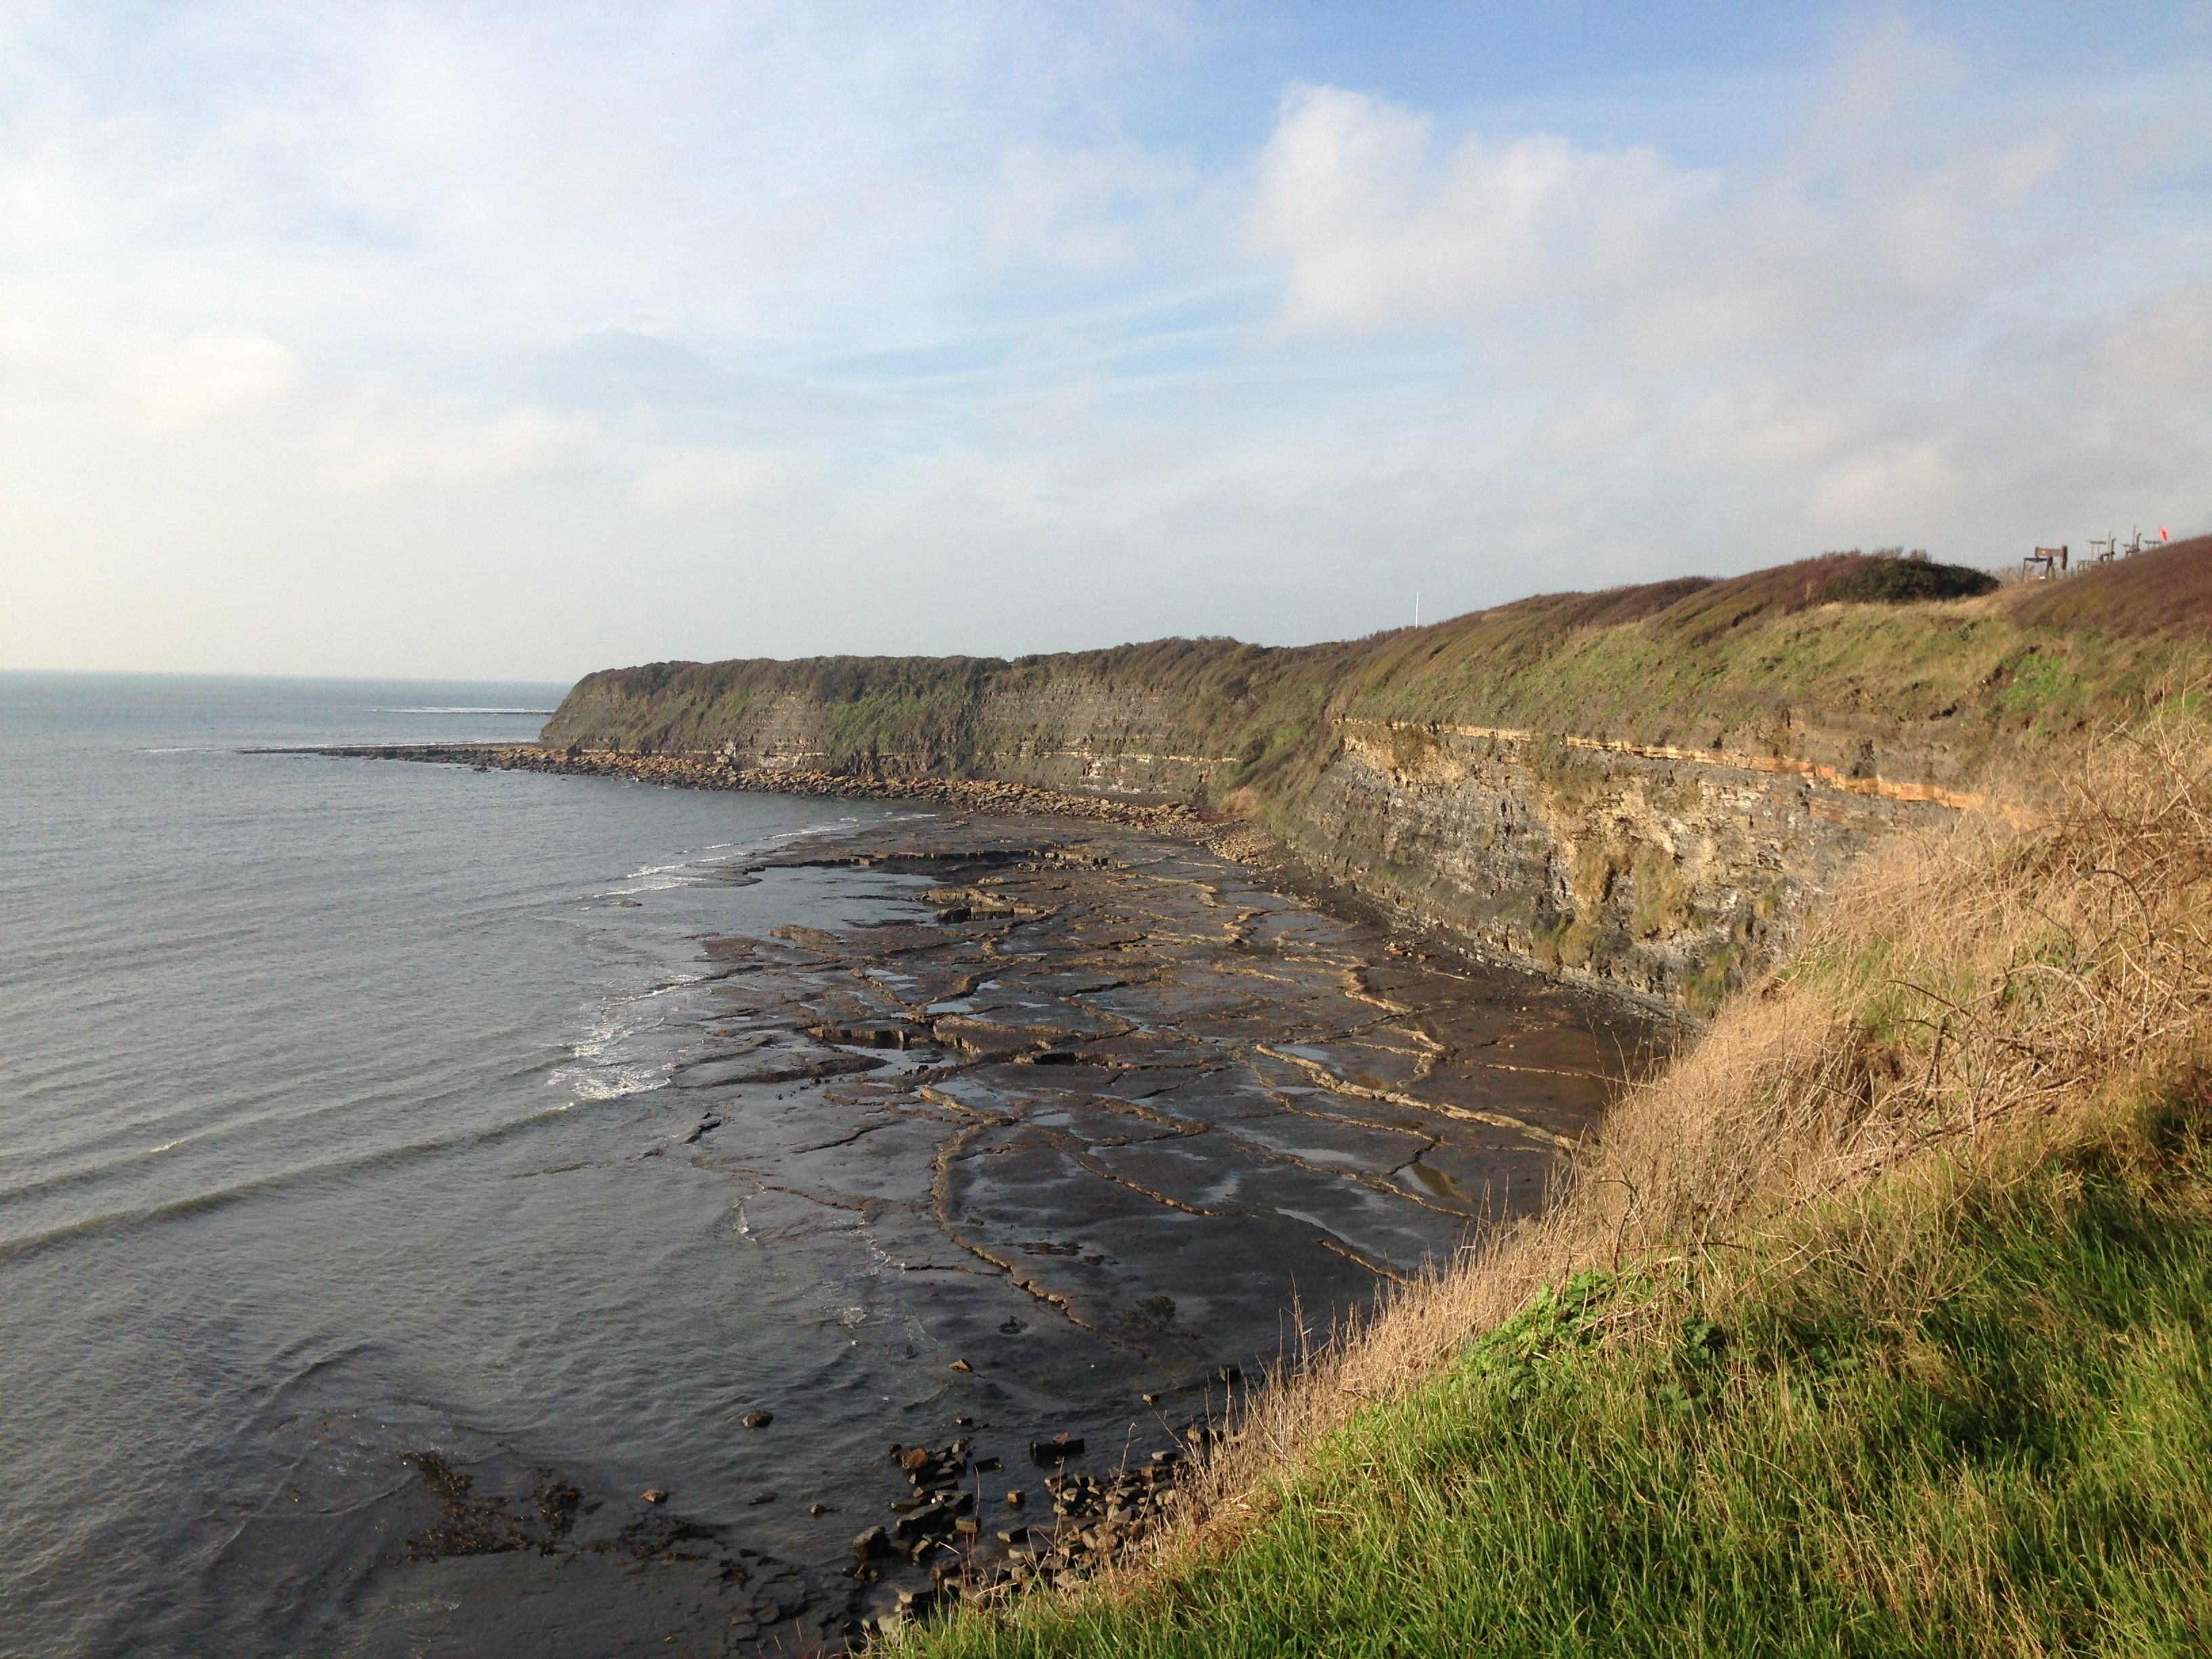 The westward side of Kimmeridge Bay